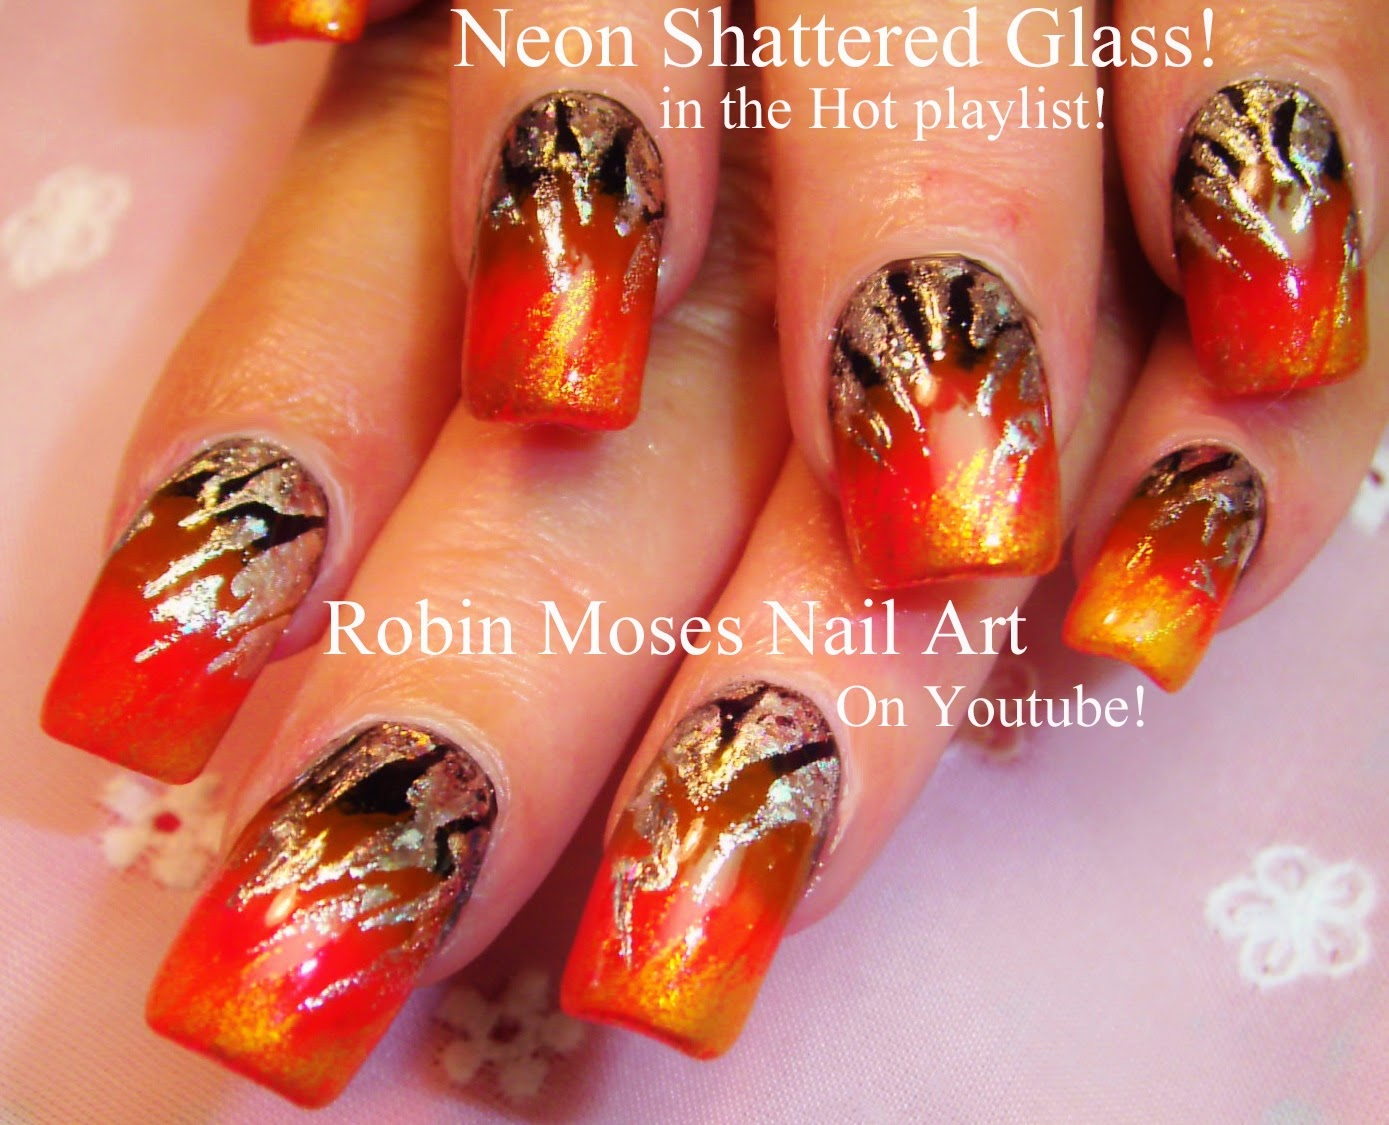 Robin moses nail art shattered glass halloween nails shattered glass halloween nails shattered glass nails nail art neon nail art orange ombre summer nails shattered glass nail art hot summer prinsesfo Choice Image